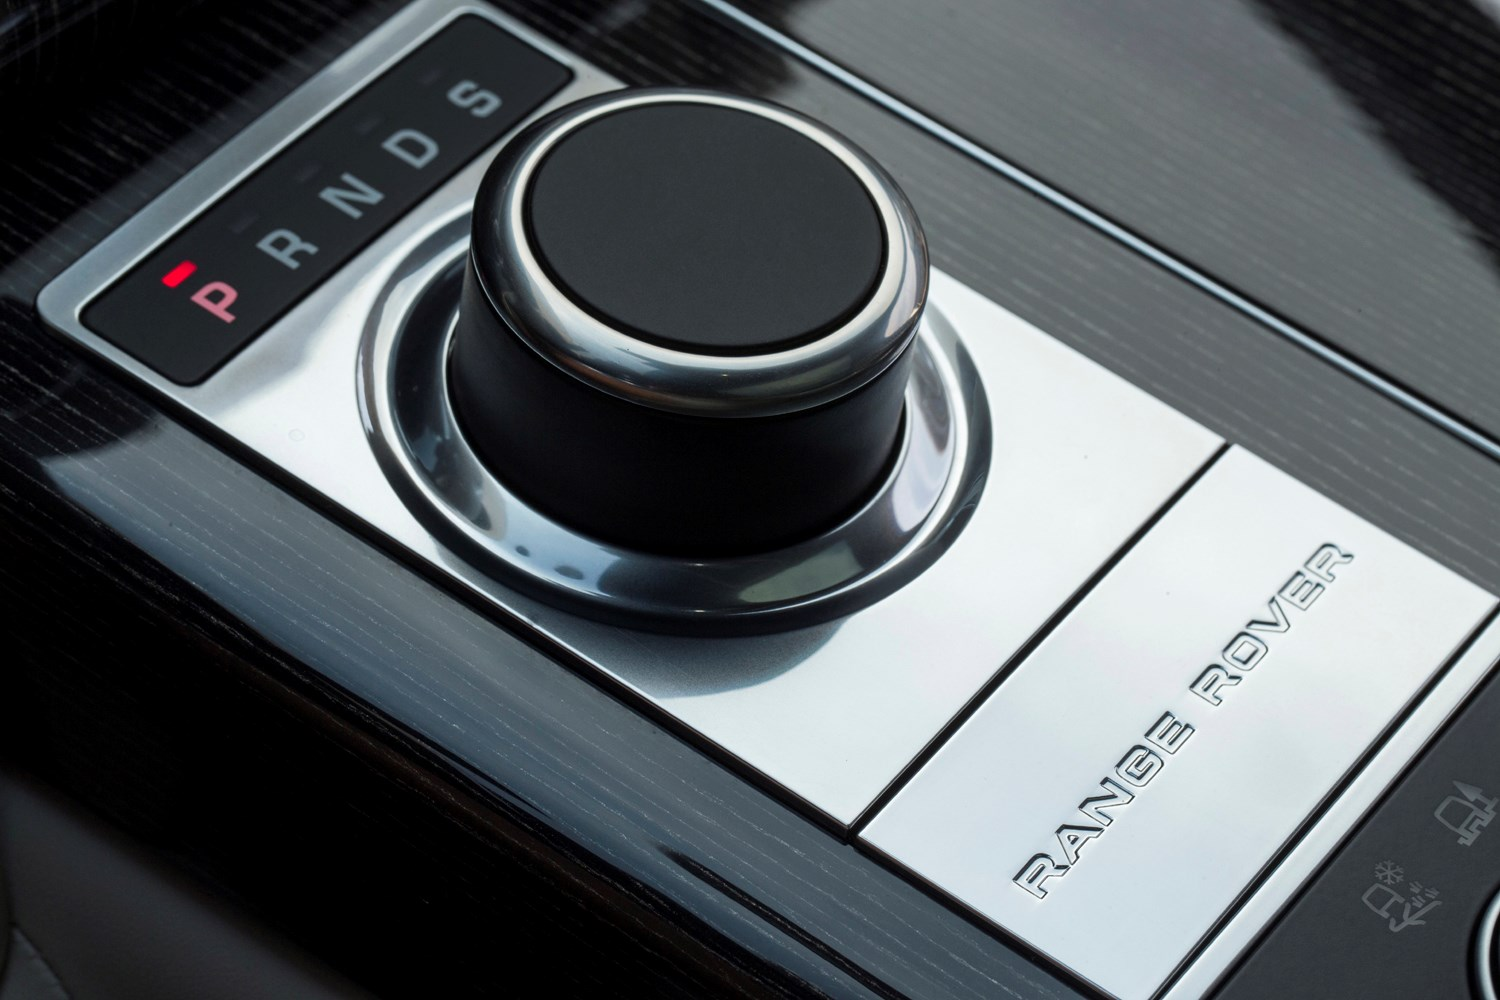 Automatic vs manual - which should you buy?